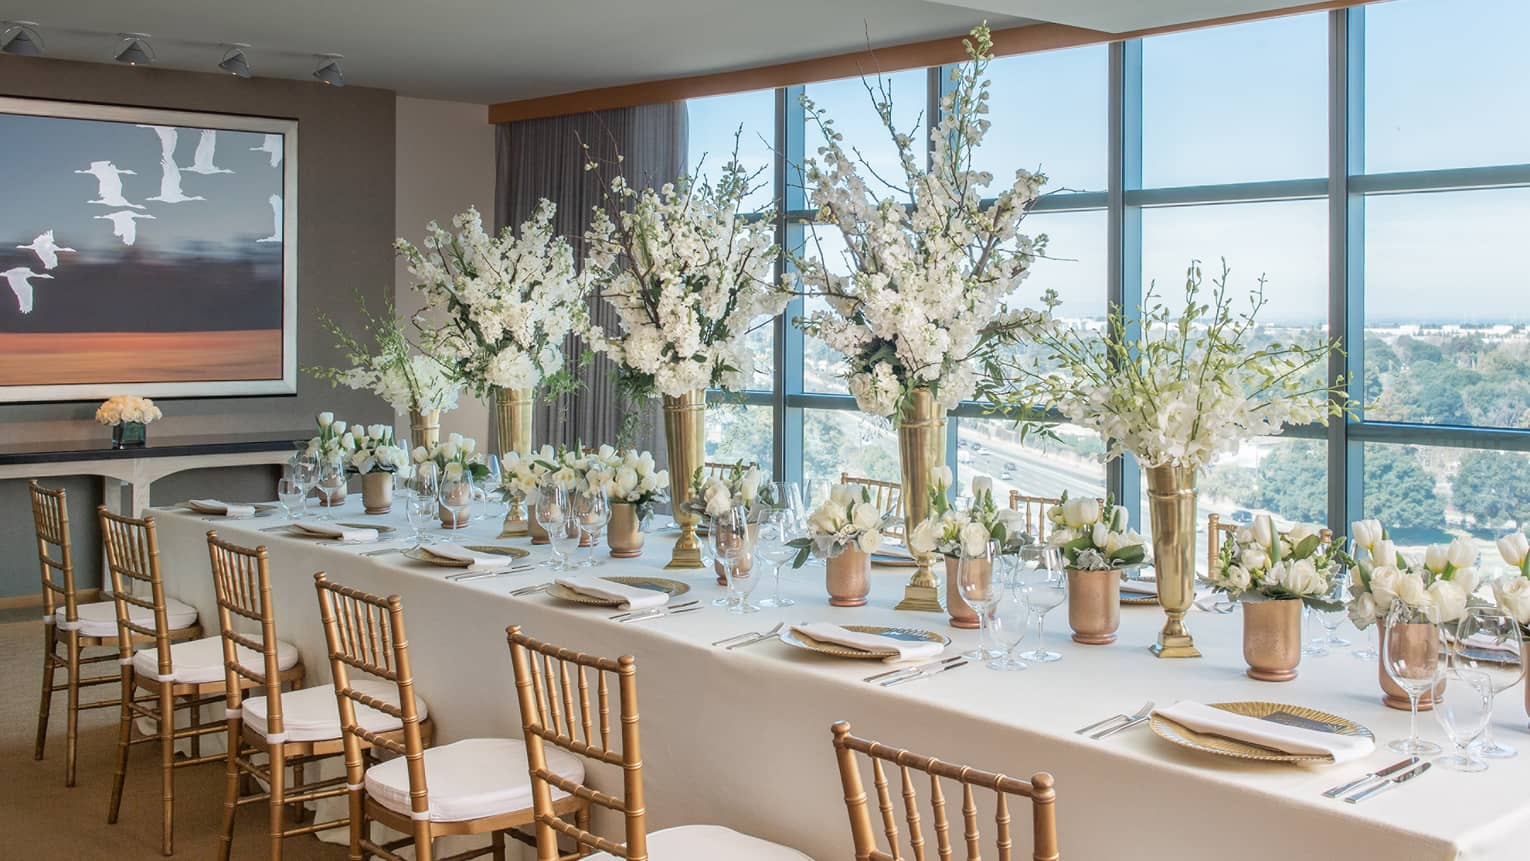 Sky Suite long dining table with white linens, flower centrepieces by window overlooking Palo Alto